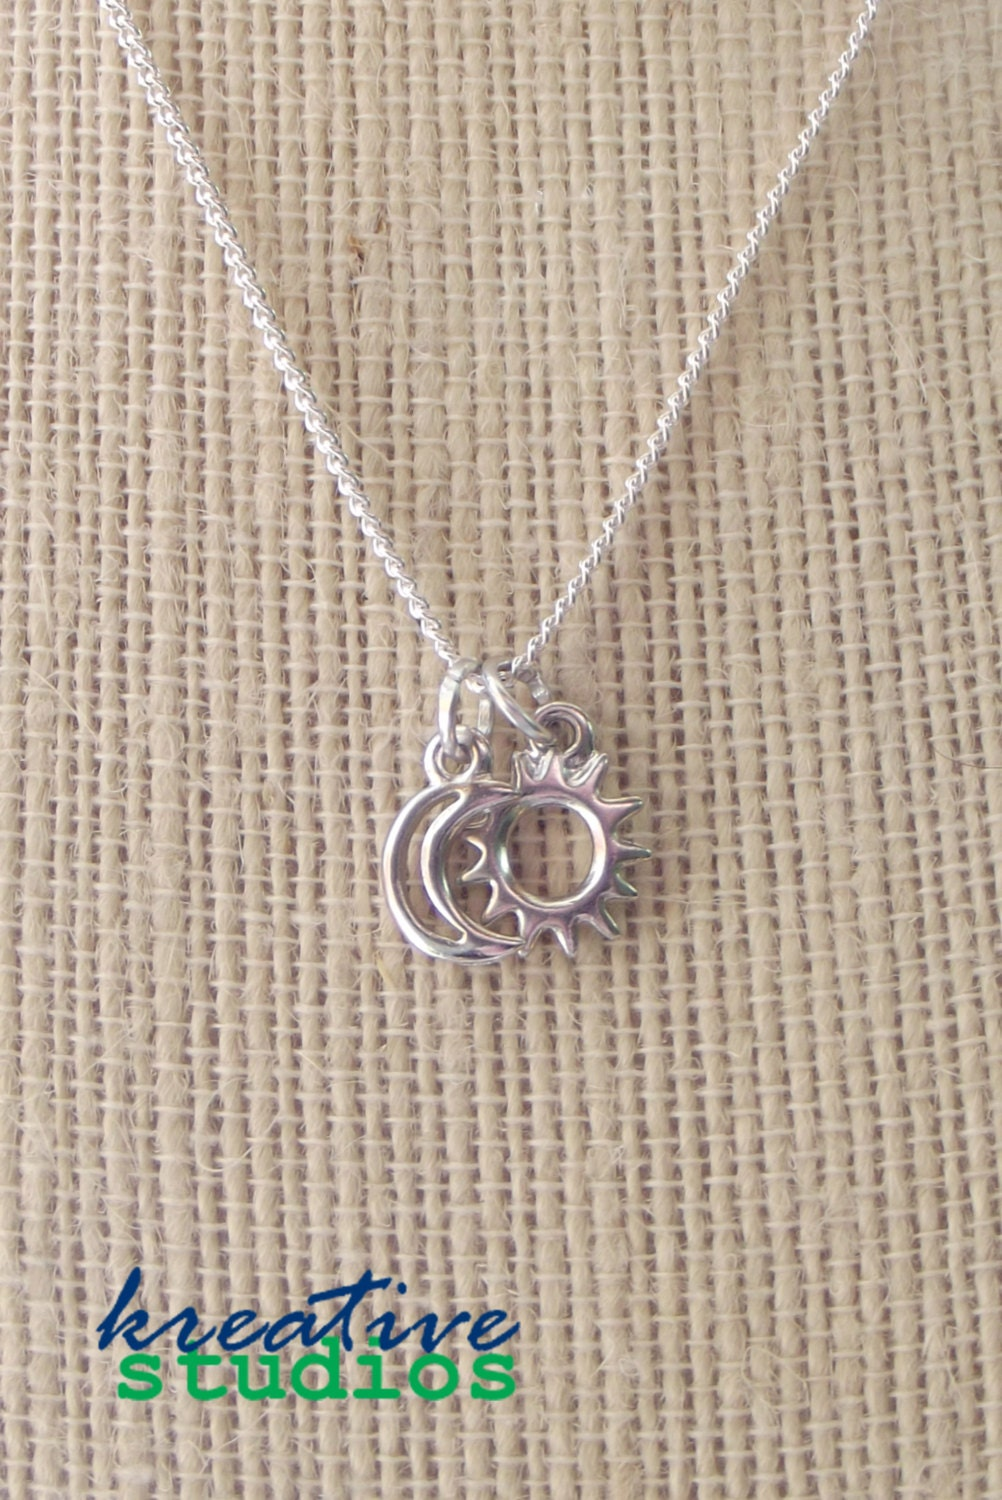 Celestial dainty charm necklaces eclipse sun moon star zoom mozeypictures Gallery